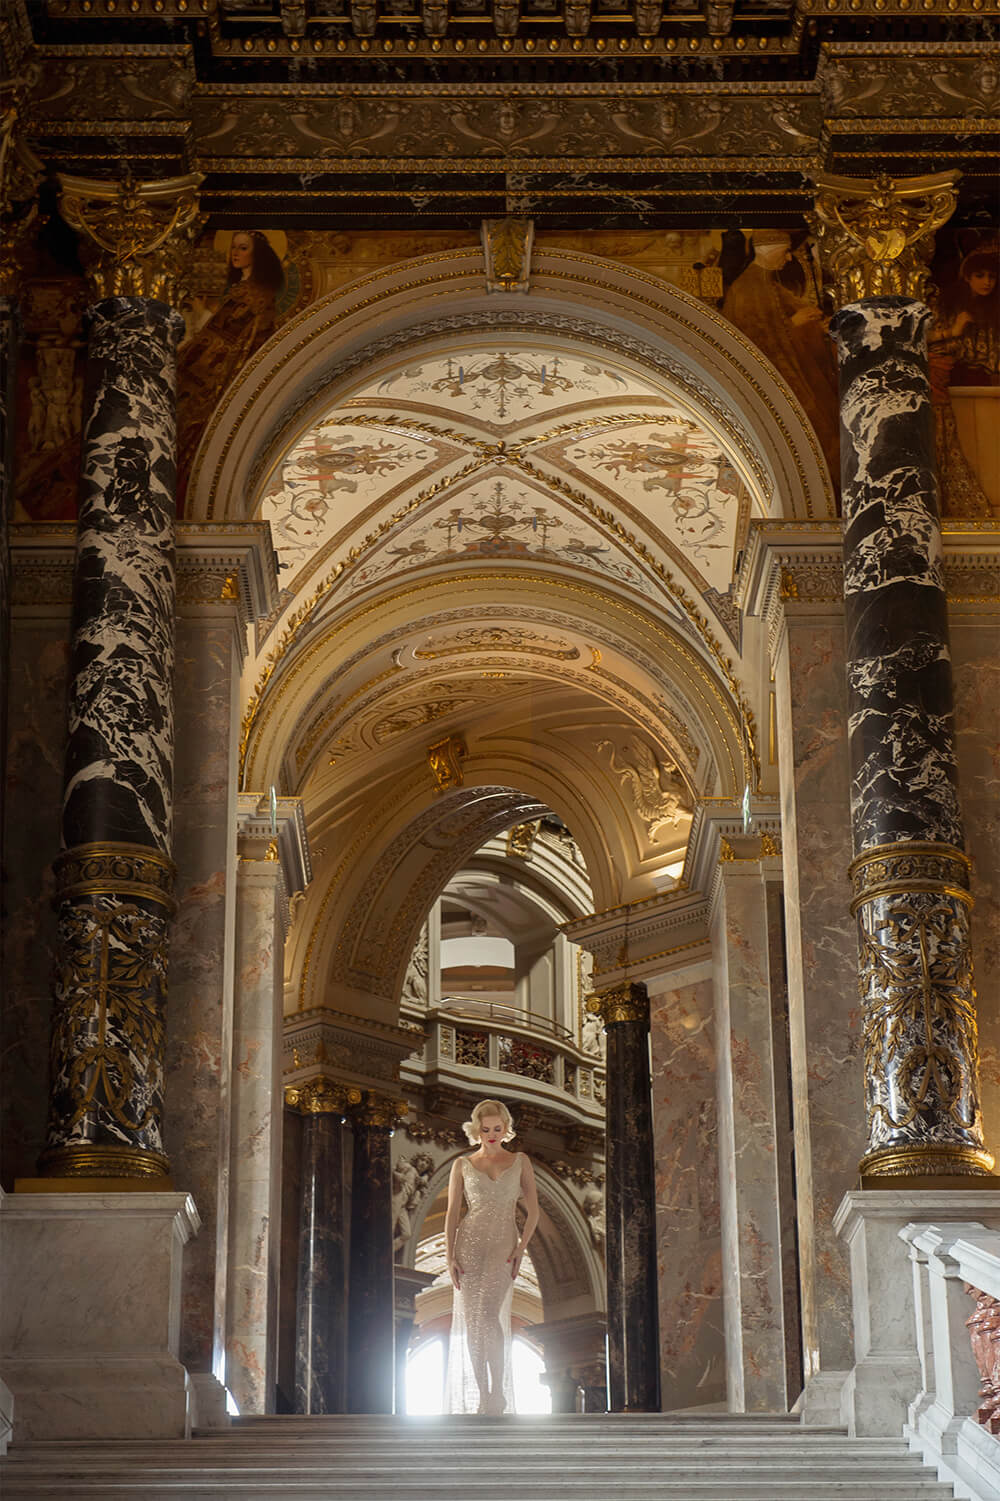 irina hofer, fashion, portrait, ursula schmitz, kunsthistorisches museum, wien, austria, beauty, simply gorgeous, bombshell, blonde, marilyn monroe